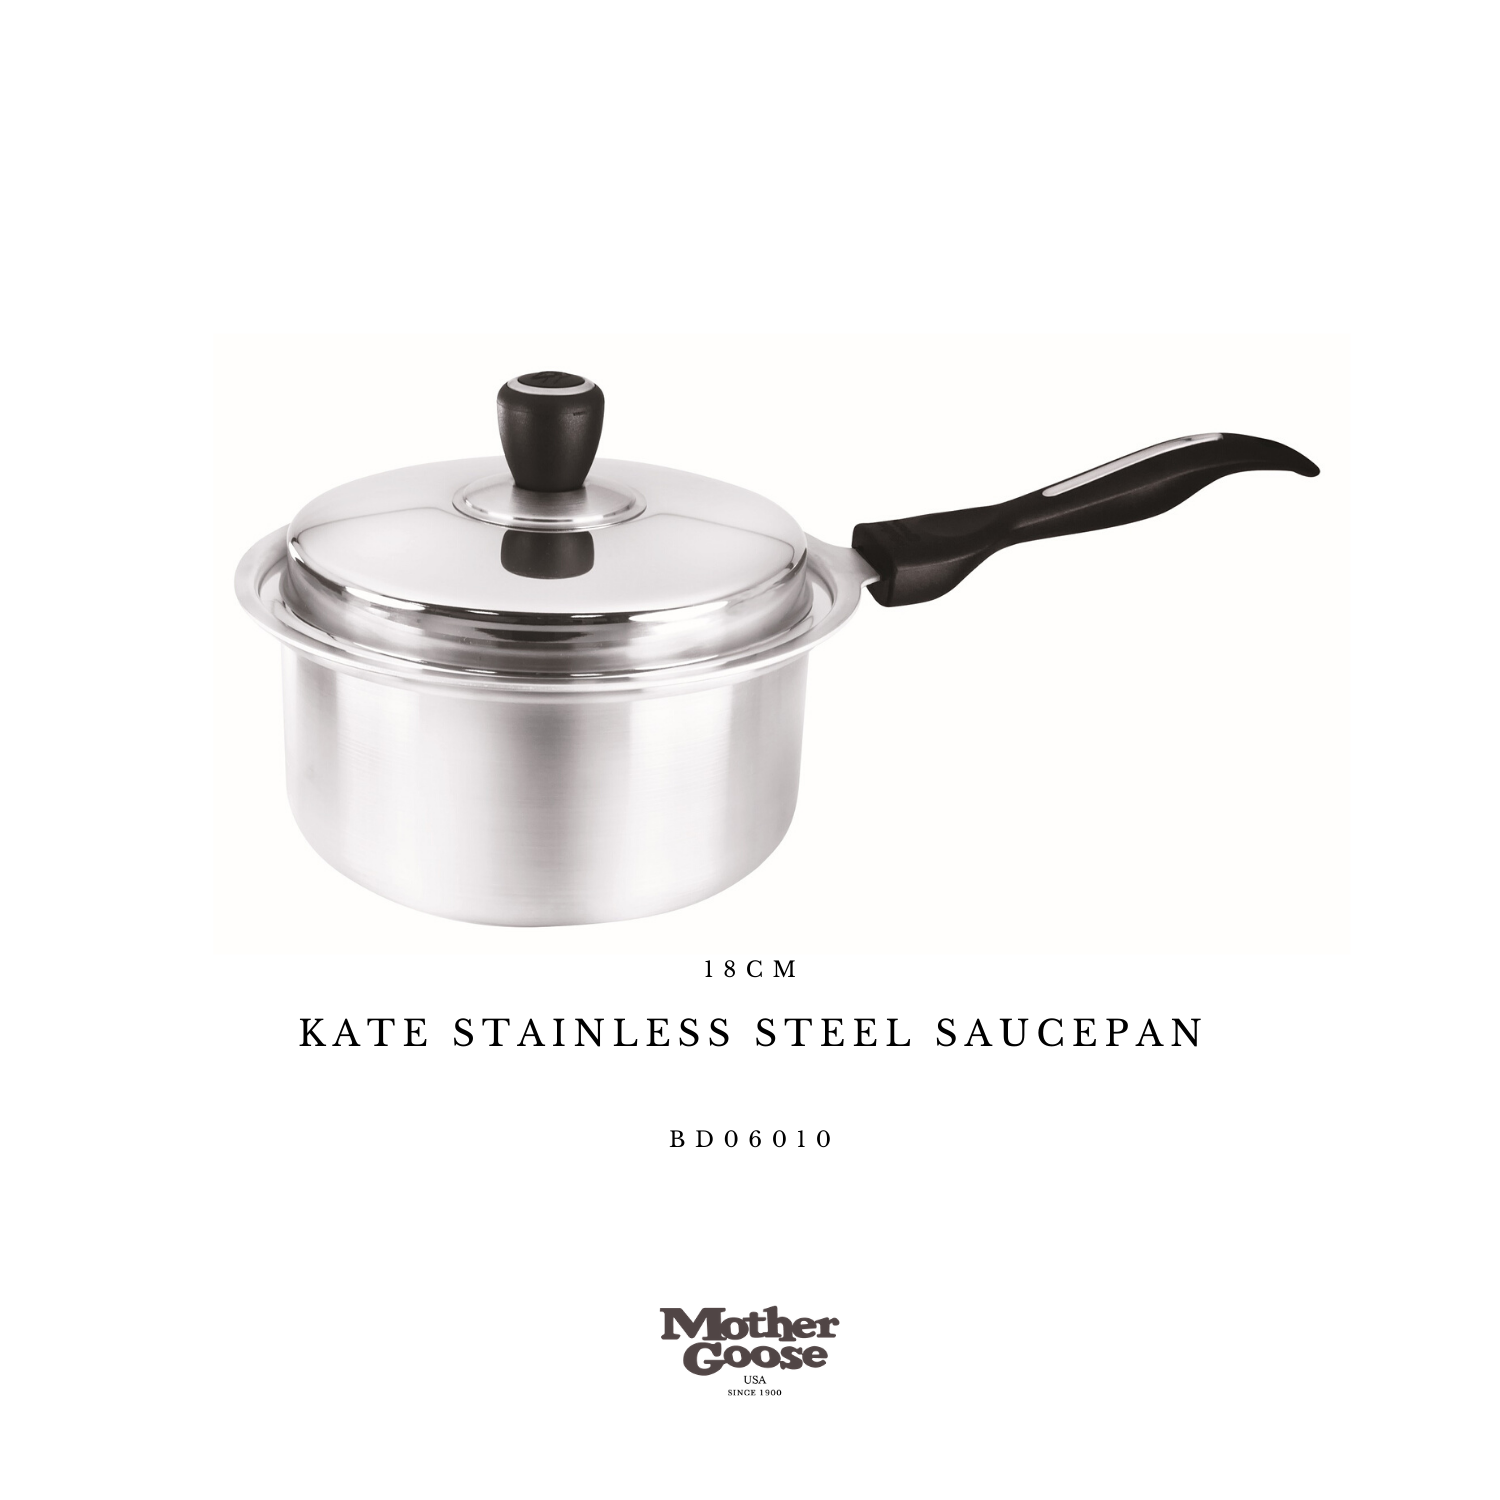 KATE STAINLESS STEEL SAUCEPAN 18CM